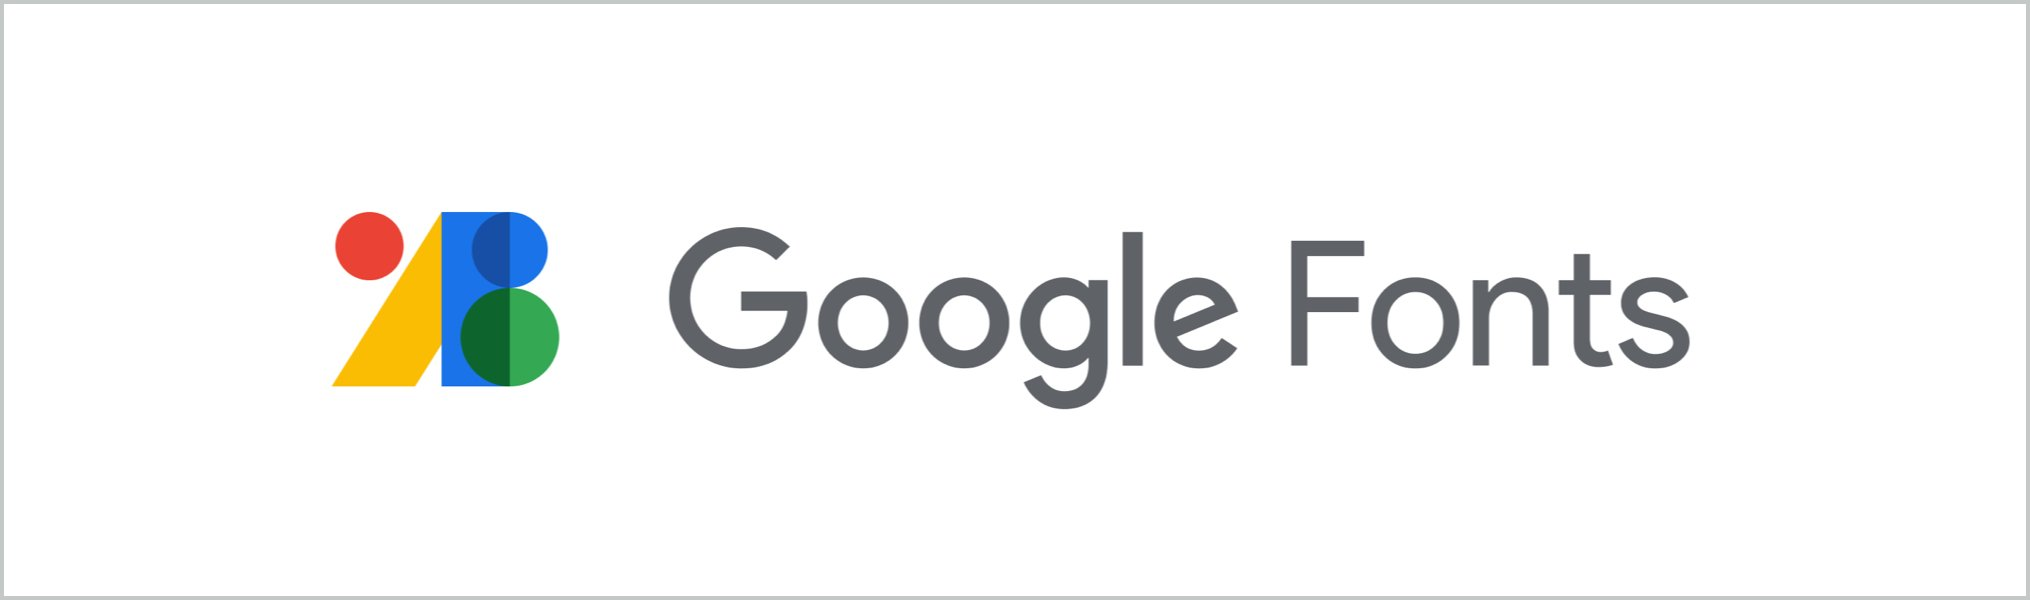 Google-Fonts-Graphic-img-D